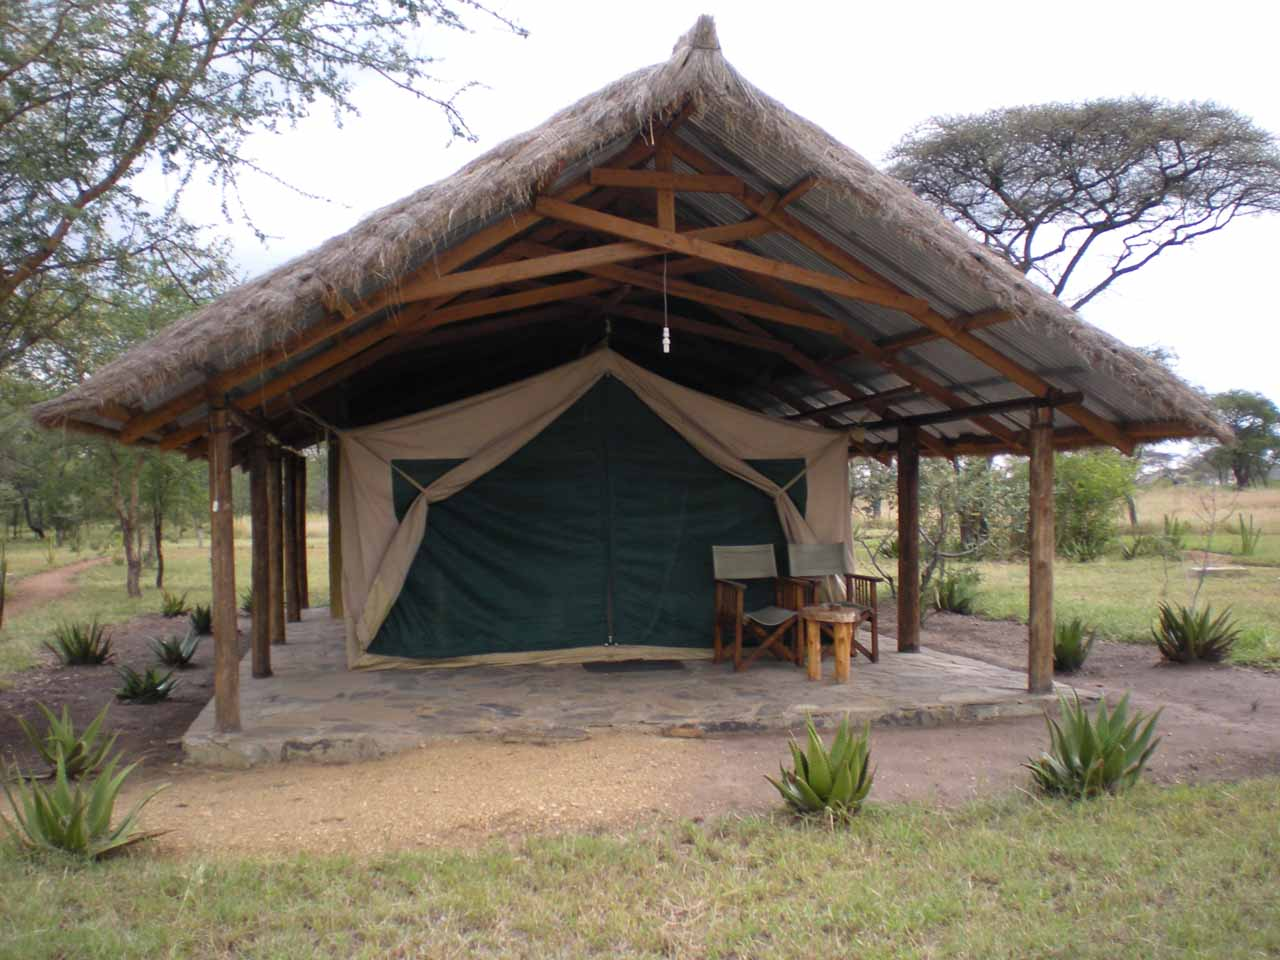 Our tented room at Ikoma Bush Camp